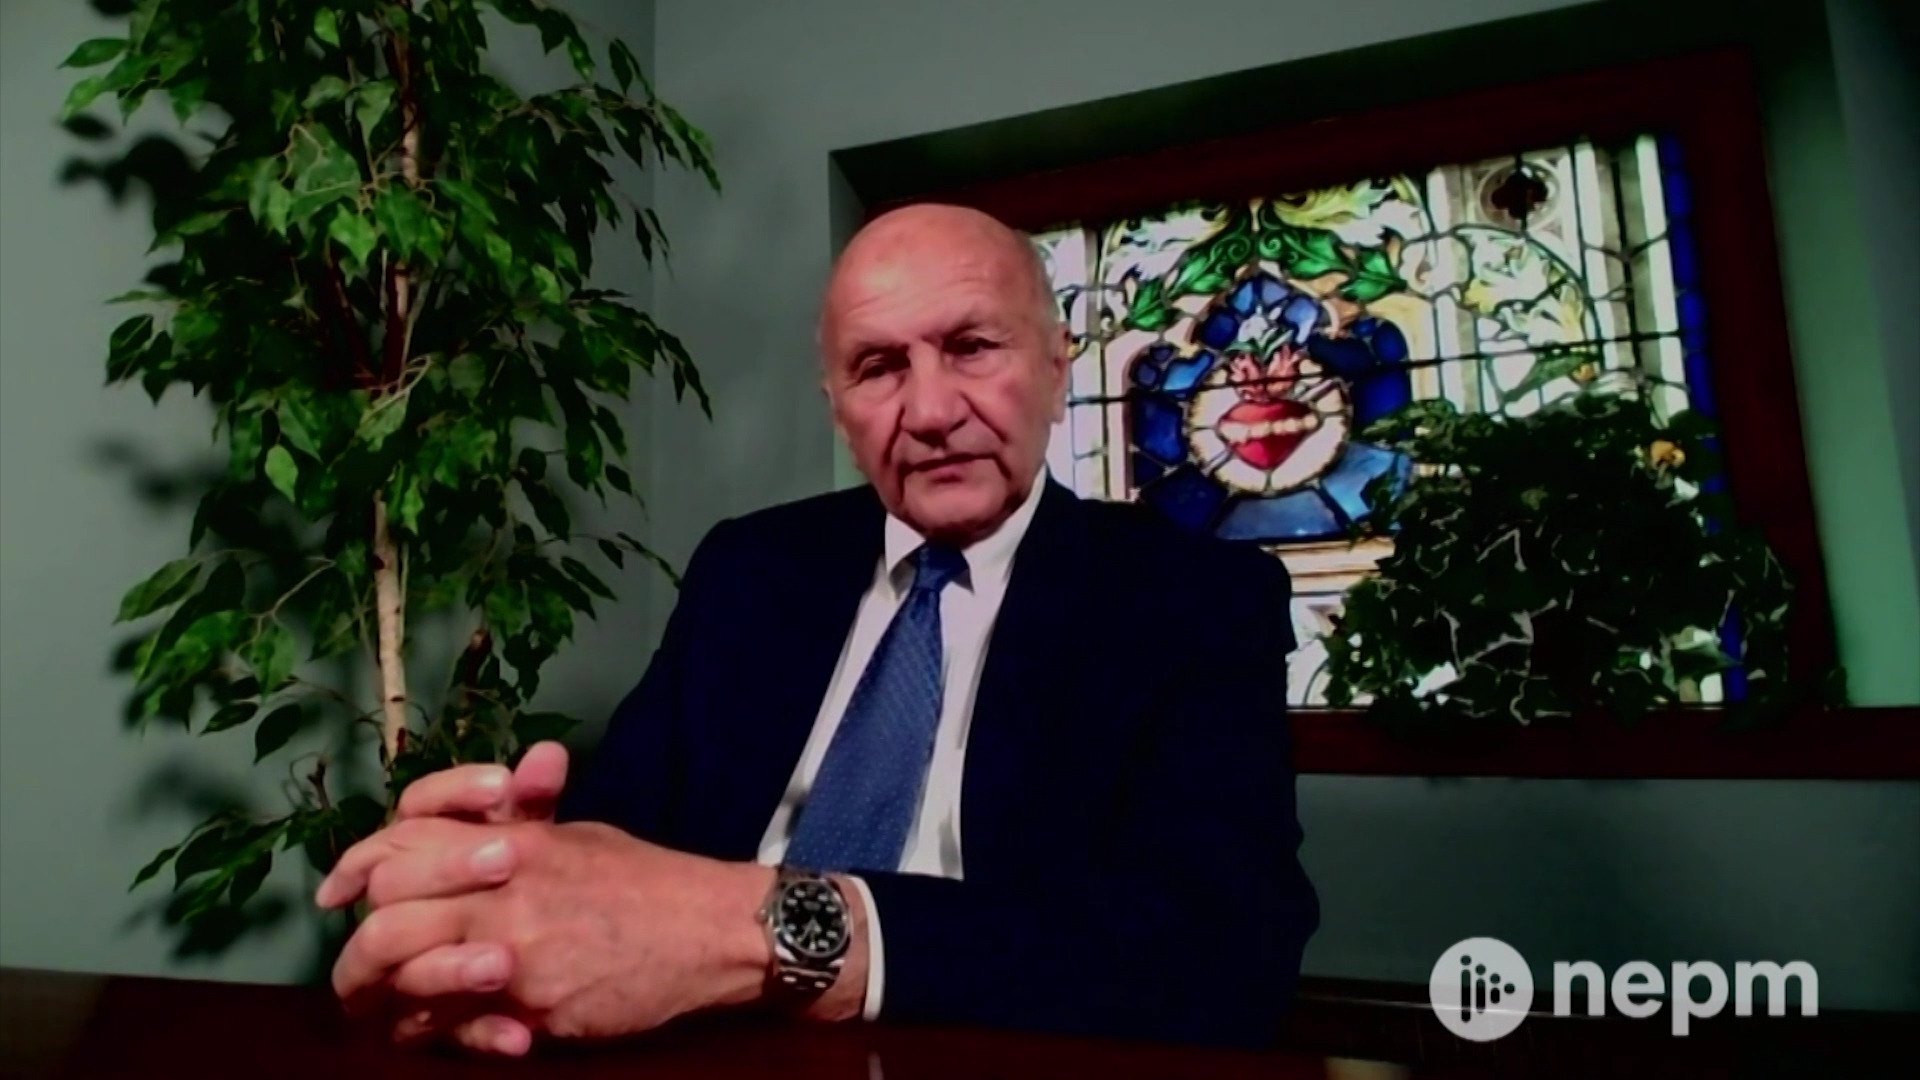 Retired Judge Peter Velis discusses his findings after a year-long investigation into sexual abuse allegations against Bishop Christopher Weldon.